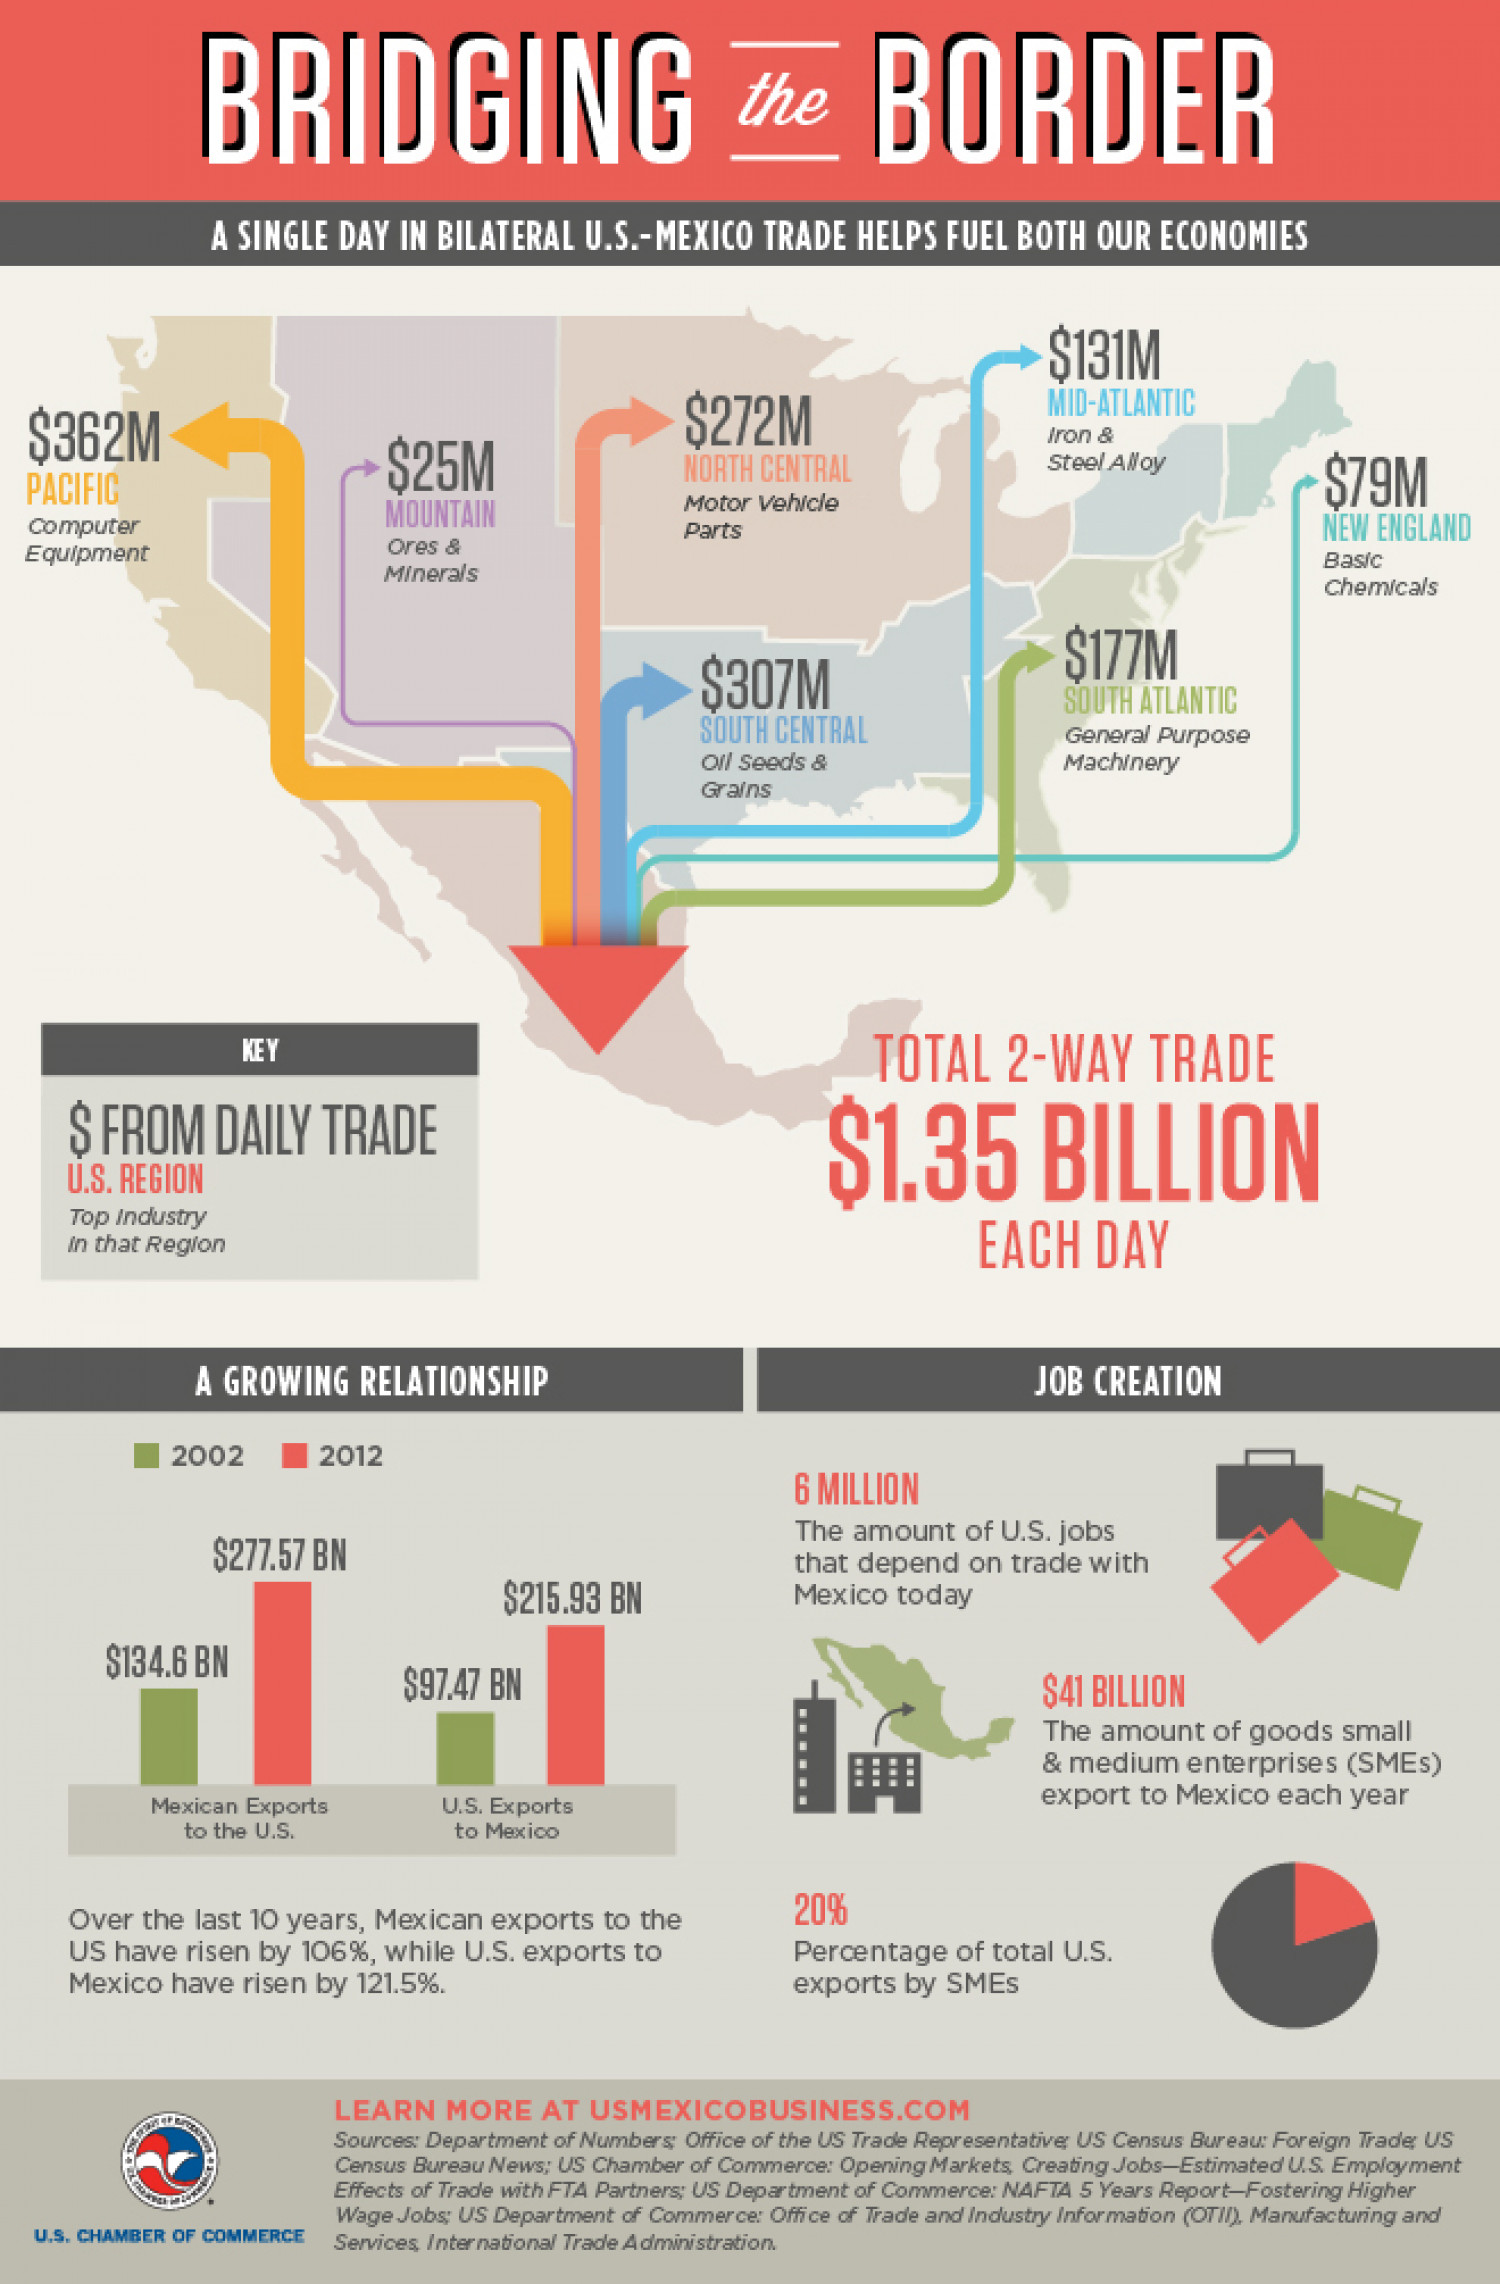 24 Hours of Bilateral U.S.-Mexico Trade Infographic